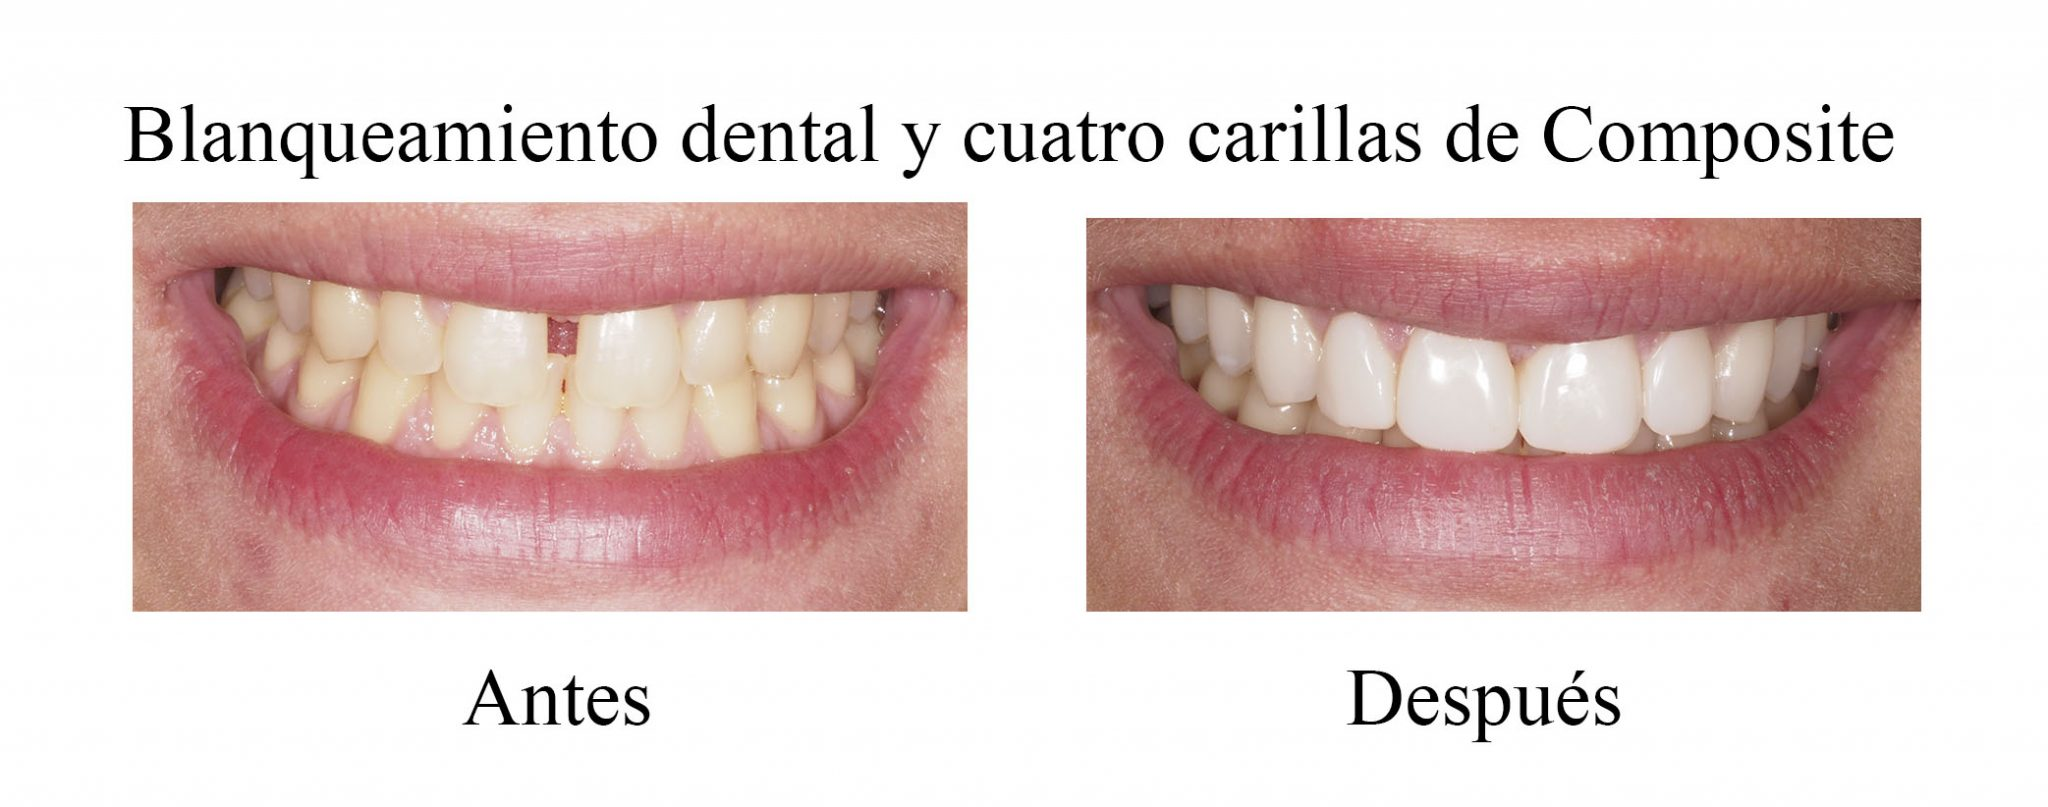 carillas dentales de composite